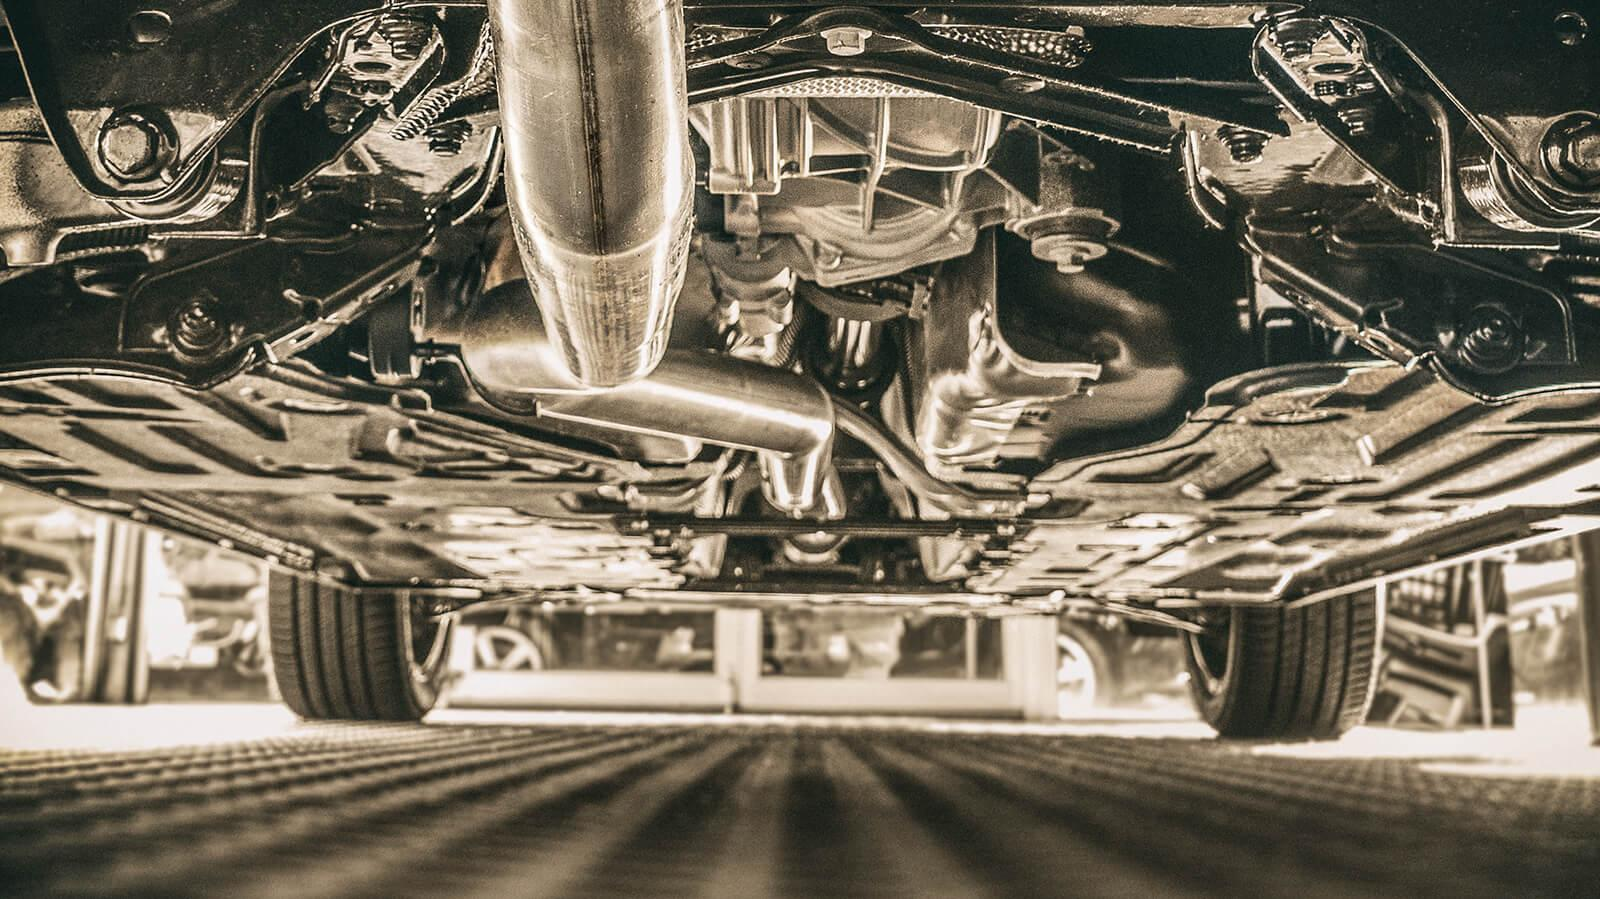 Under carriage of a car